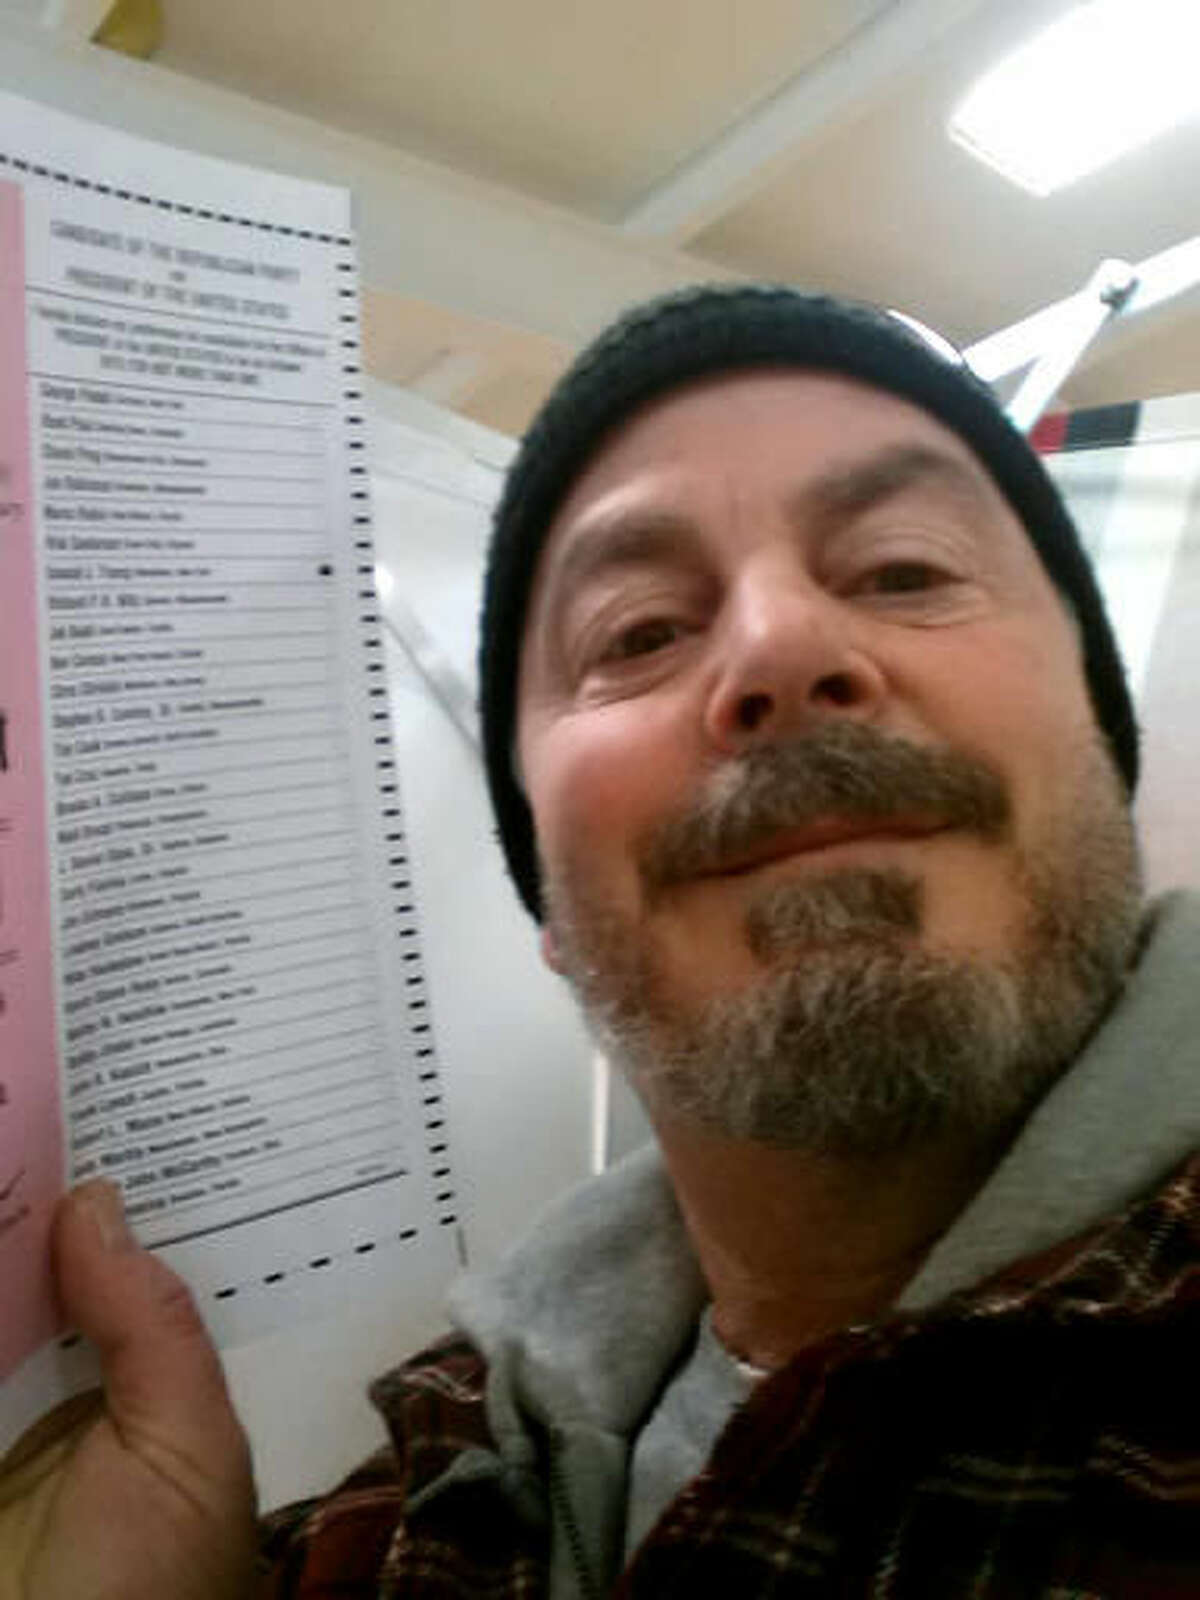 In this Feb. 9, 2016, photo, provided by Bill Phillips, of Nashua, N.H., Phillips takes a selfie with his marked election ballot. The secrecy of the voting booth may soon be a thing of the past. Ballot selfies, where people use smartphones to photograph and share their marked ballots online, are becoming more common, as voters young and old look to share their views with family, friends and the world. But what they don't realize is they may be breaking the law, depending on where they live. (Bill Phillips via AP)